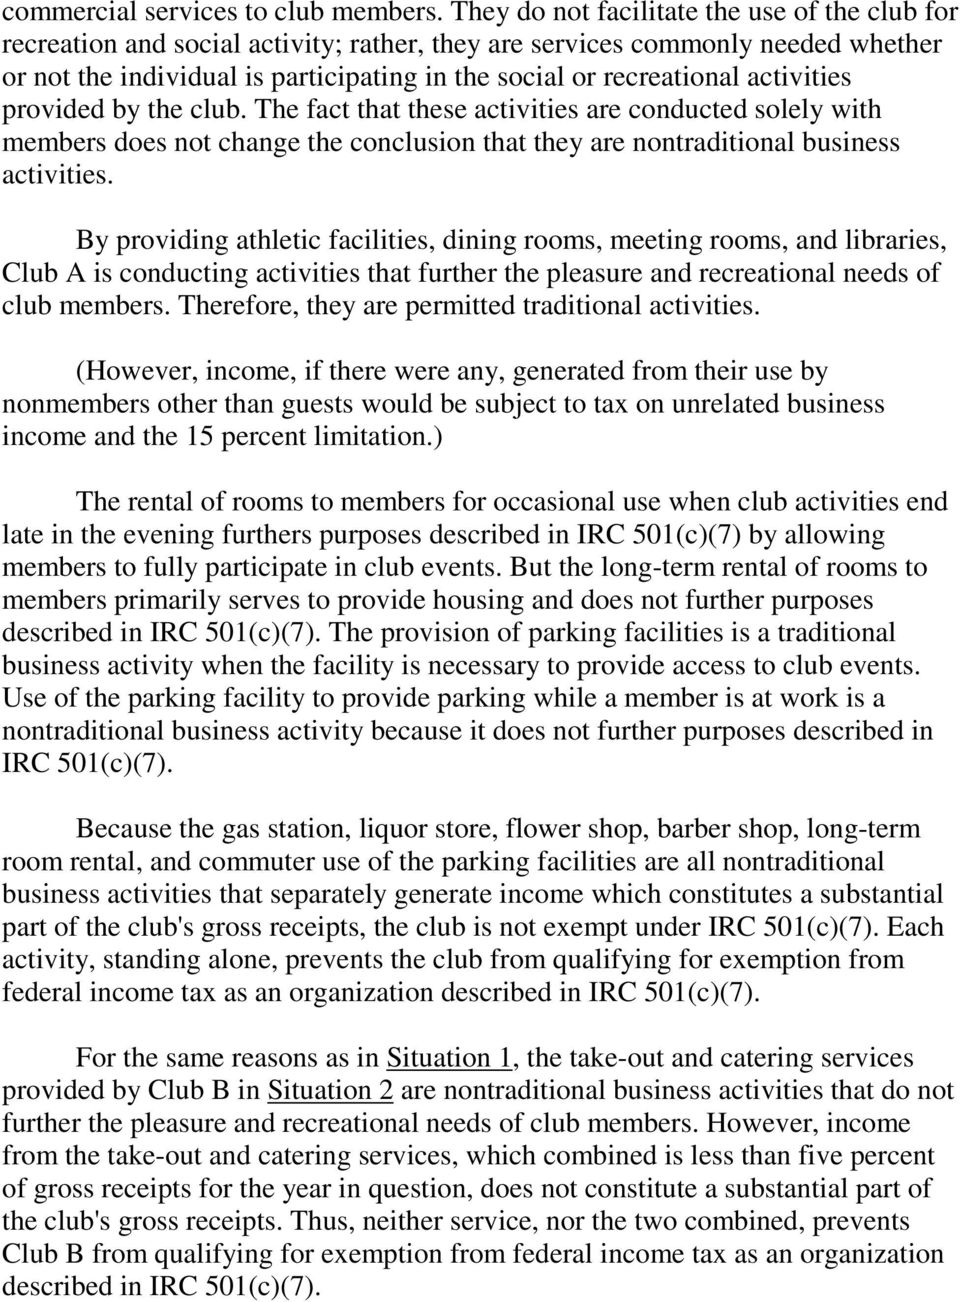 activities provided by the club. The fact that these activities are conducted solely with members does not change the conclusion that they are nontraditional business activities.